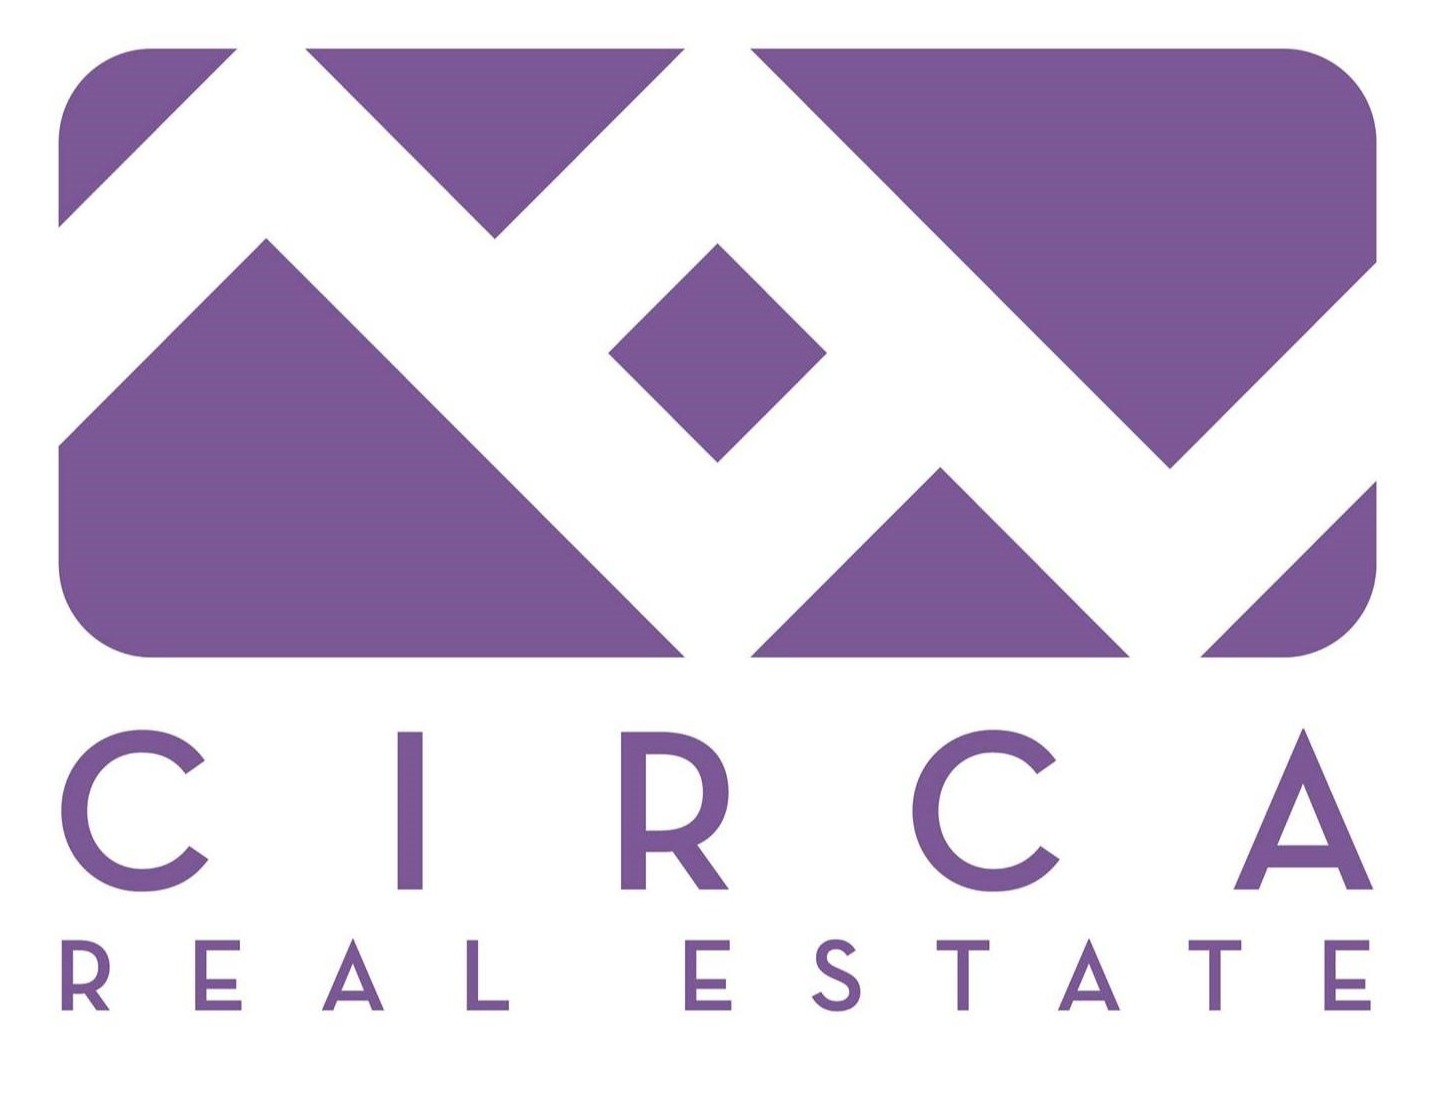 Circa Real Estate LLC